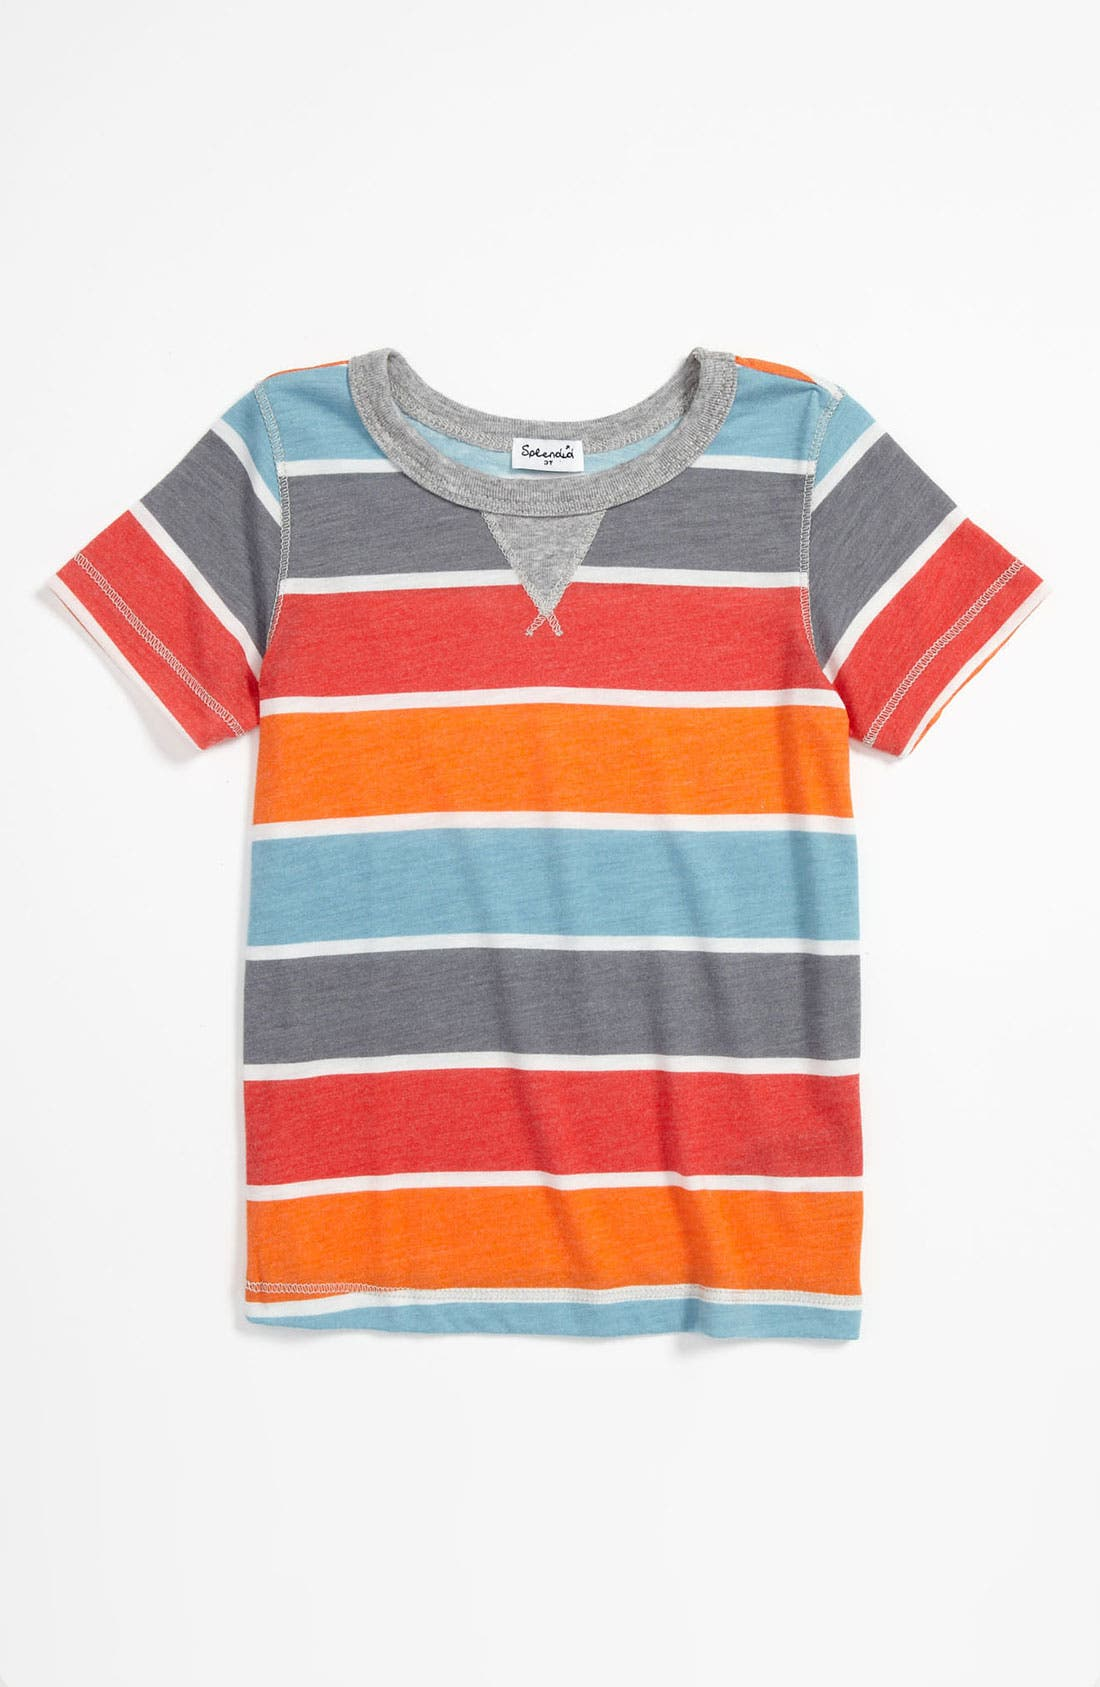 Main Image - Splendid Stripe T-Shirt (Toddler)